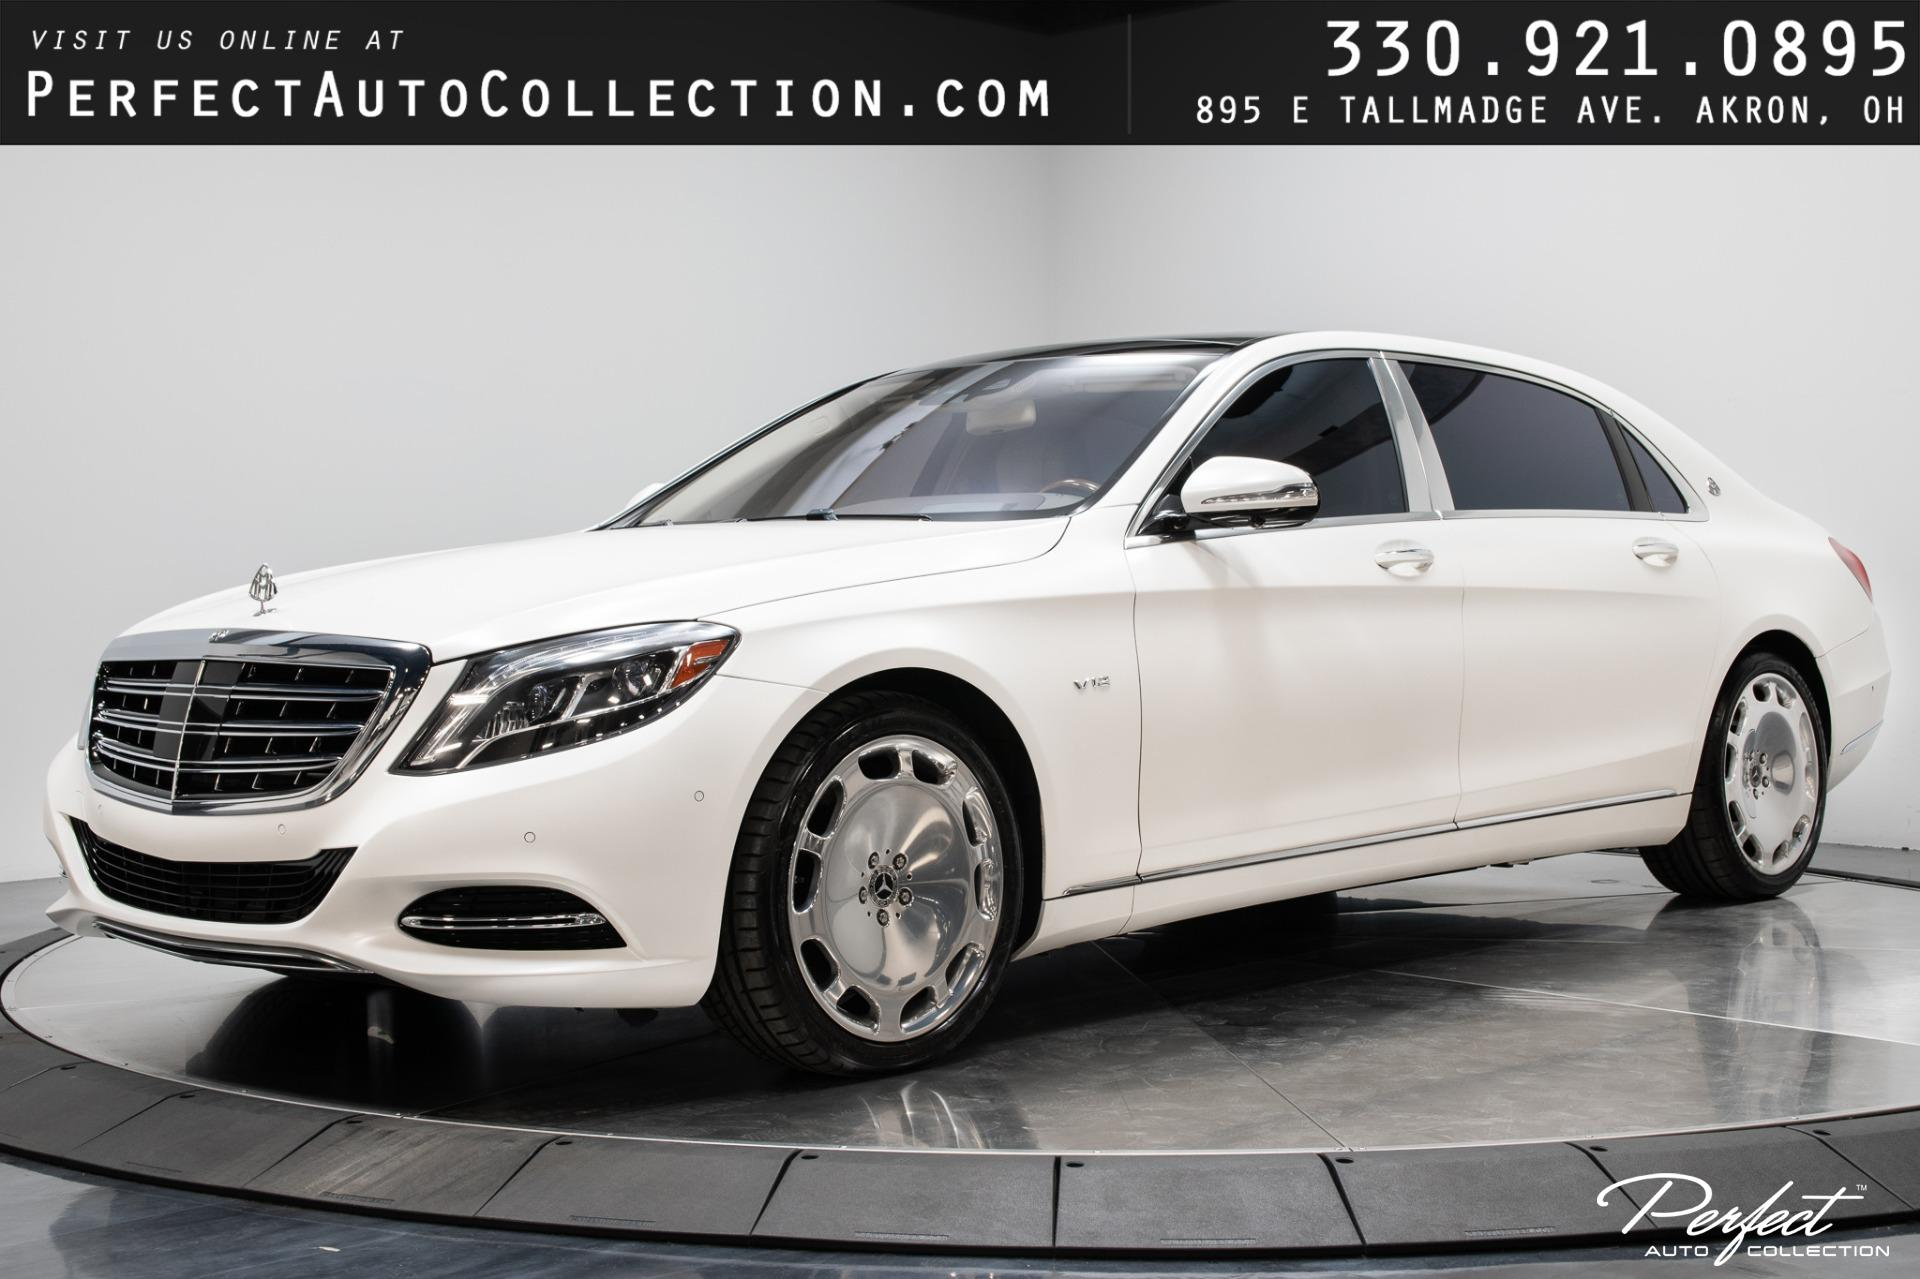 Used 2017 Mercedes-Benz S-Class Mercedes-Maybach S 600 for sale $118,995 at Perfect Auto Collection in Akron OH 44310 1